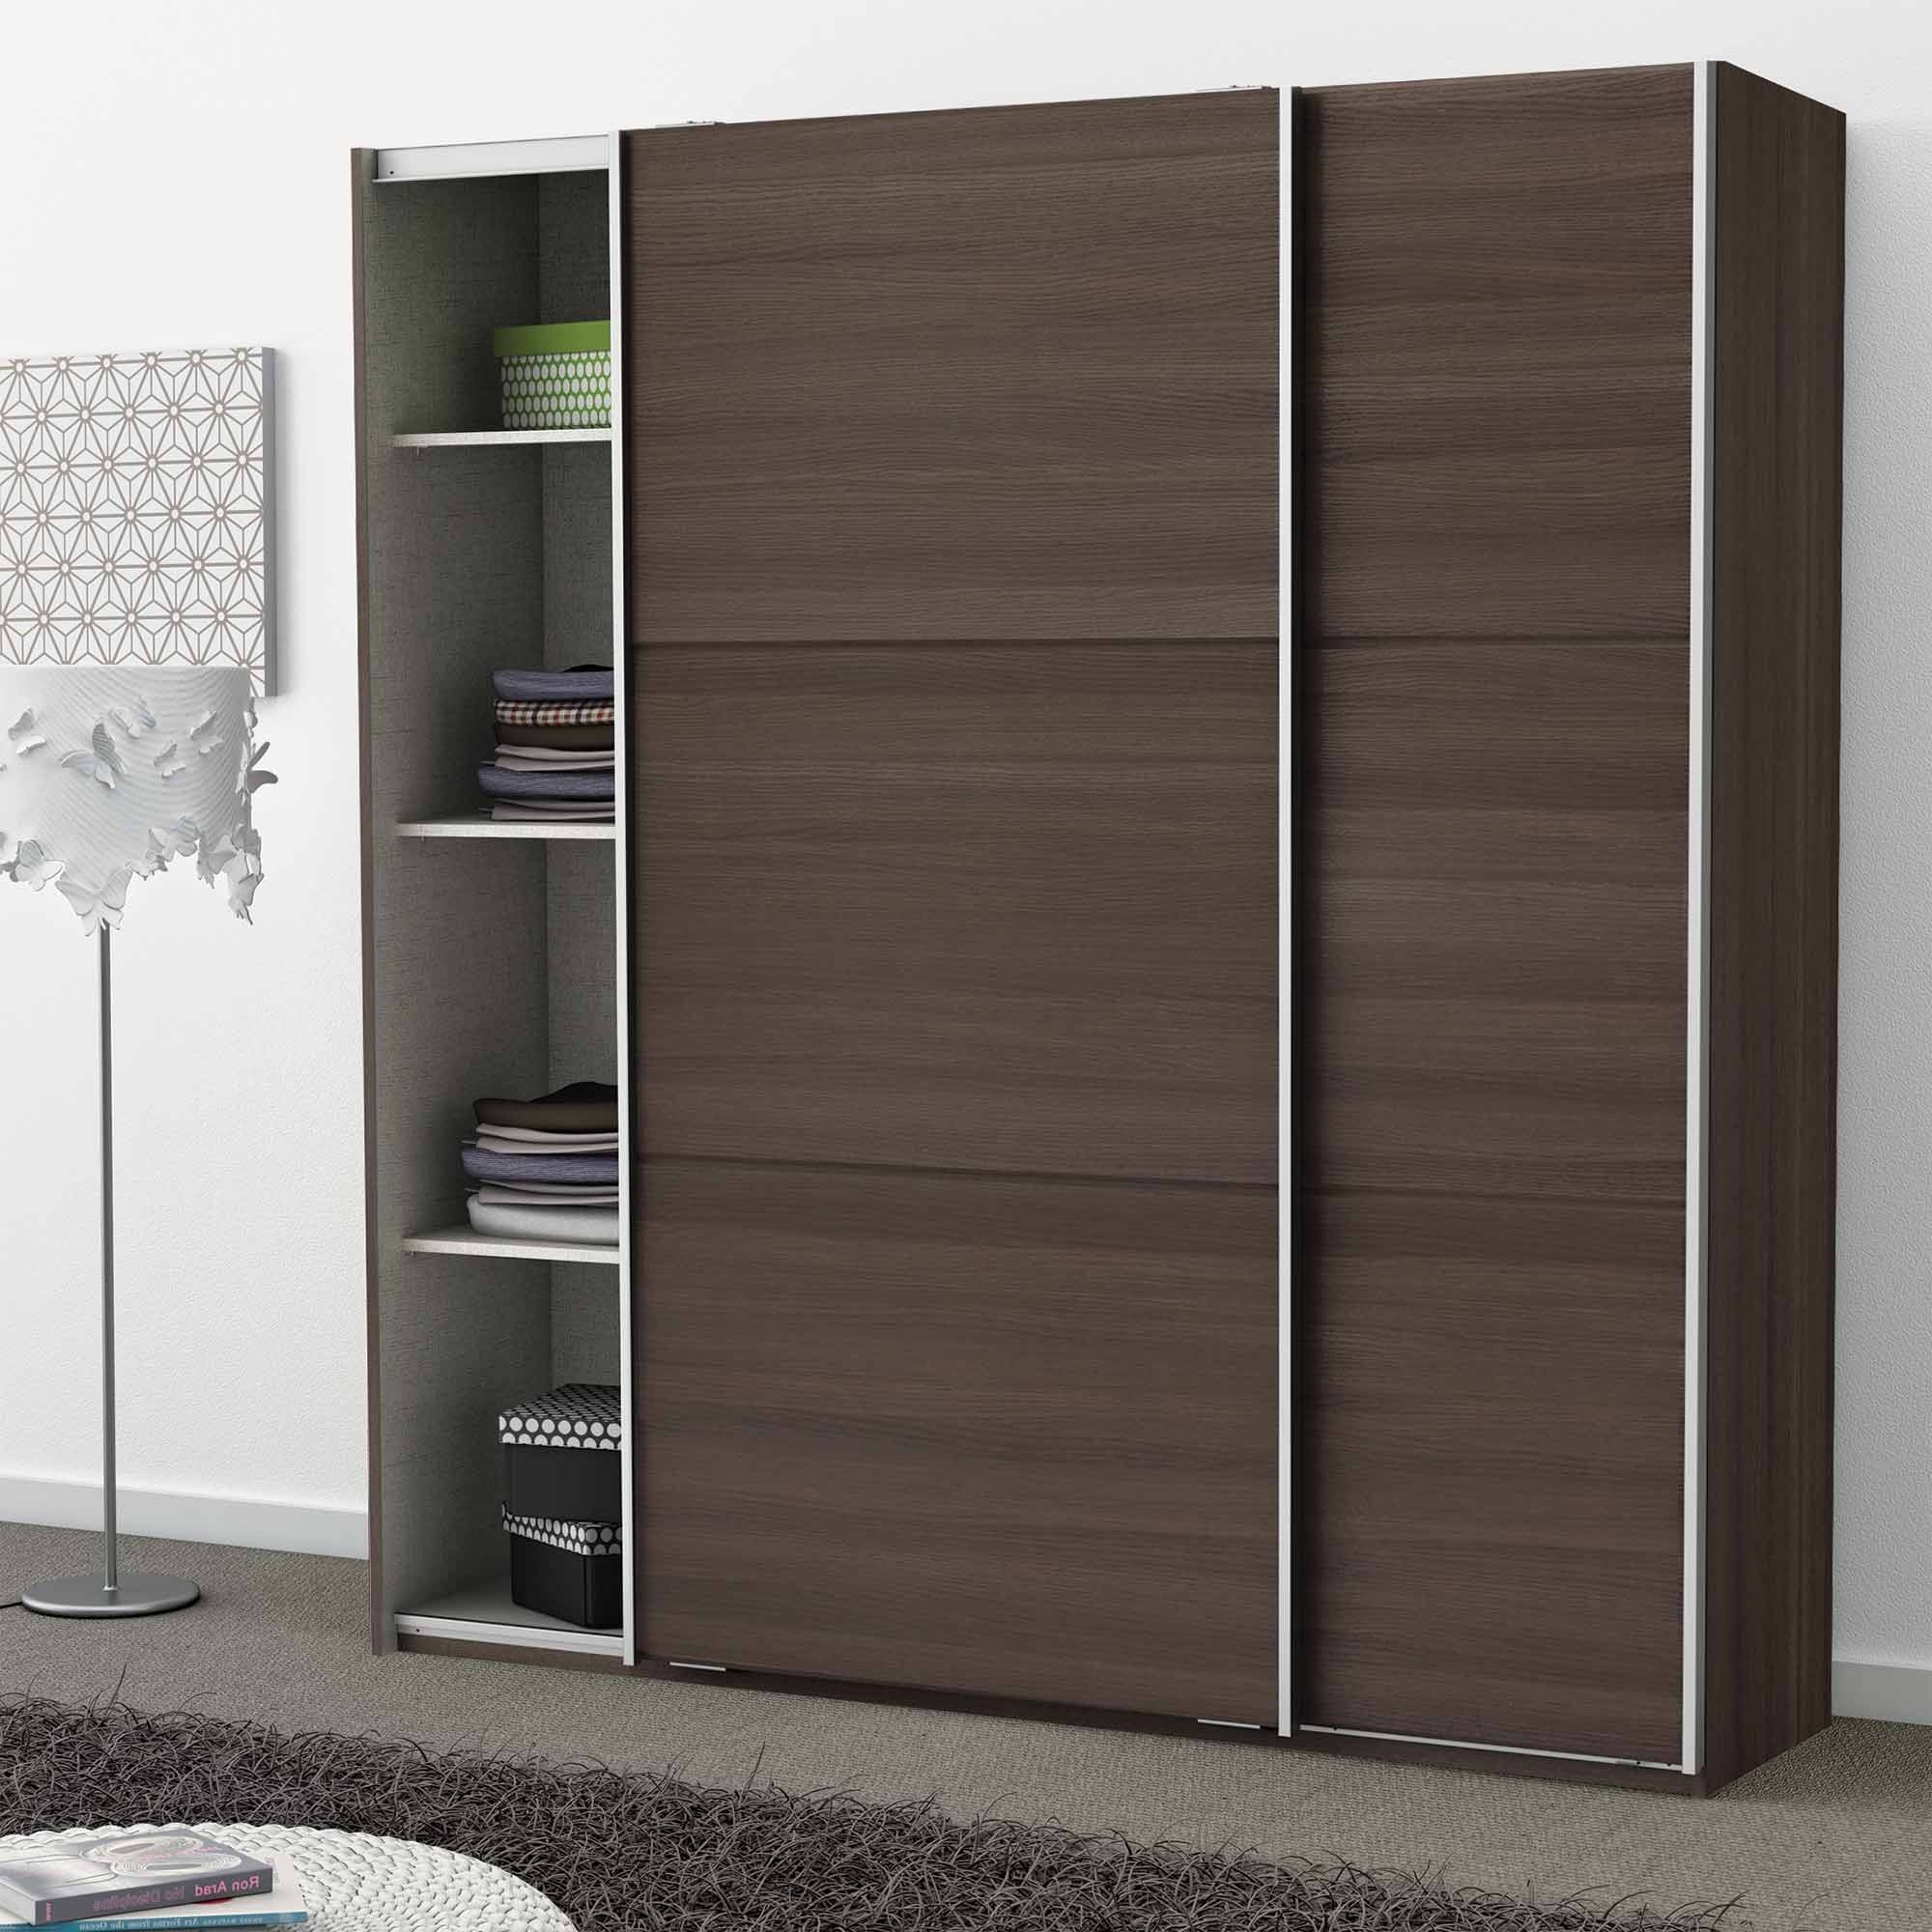 armoire basse chambre porte coulissante armoire id es de d coration de maison gkd0ze2nw6. Black Bedroom Furniture Sets. Home Design Ideas